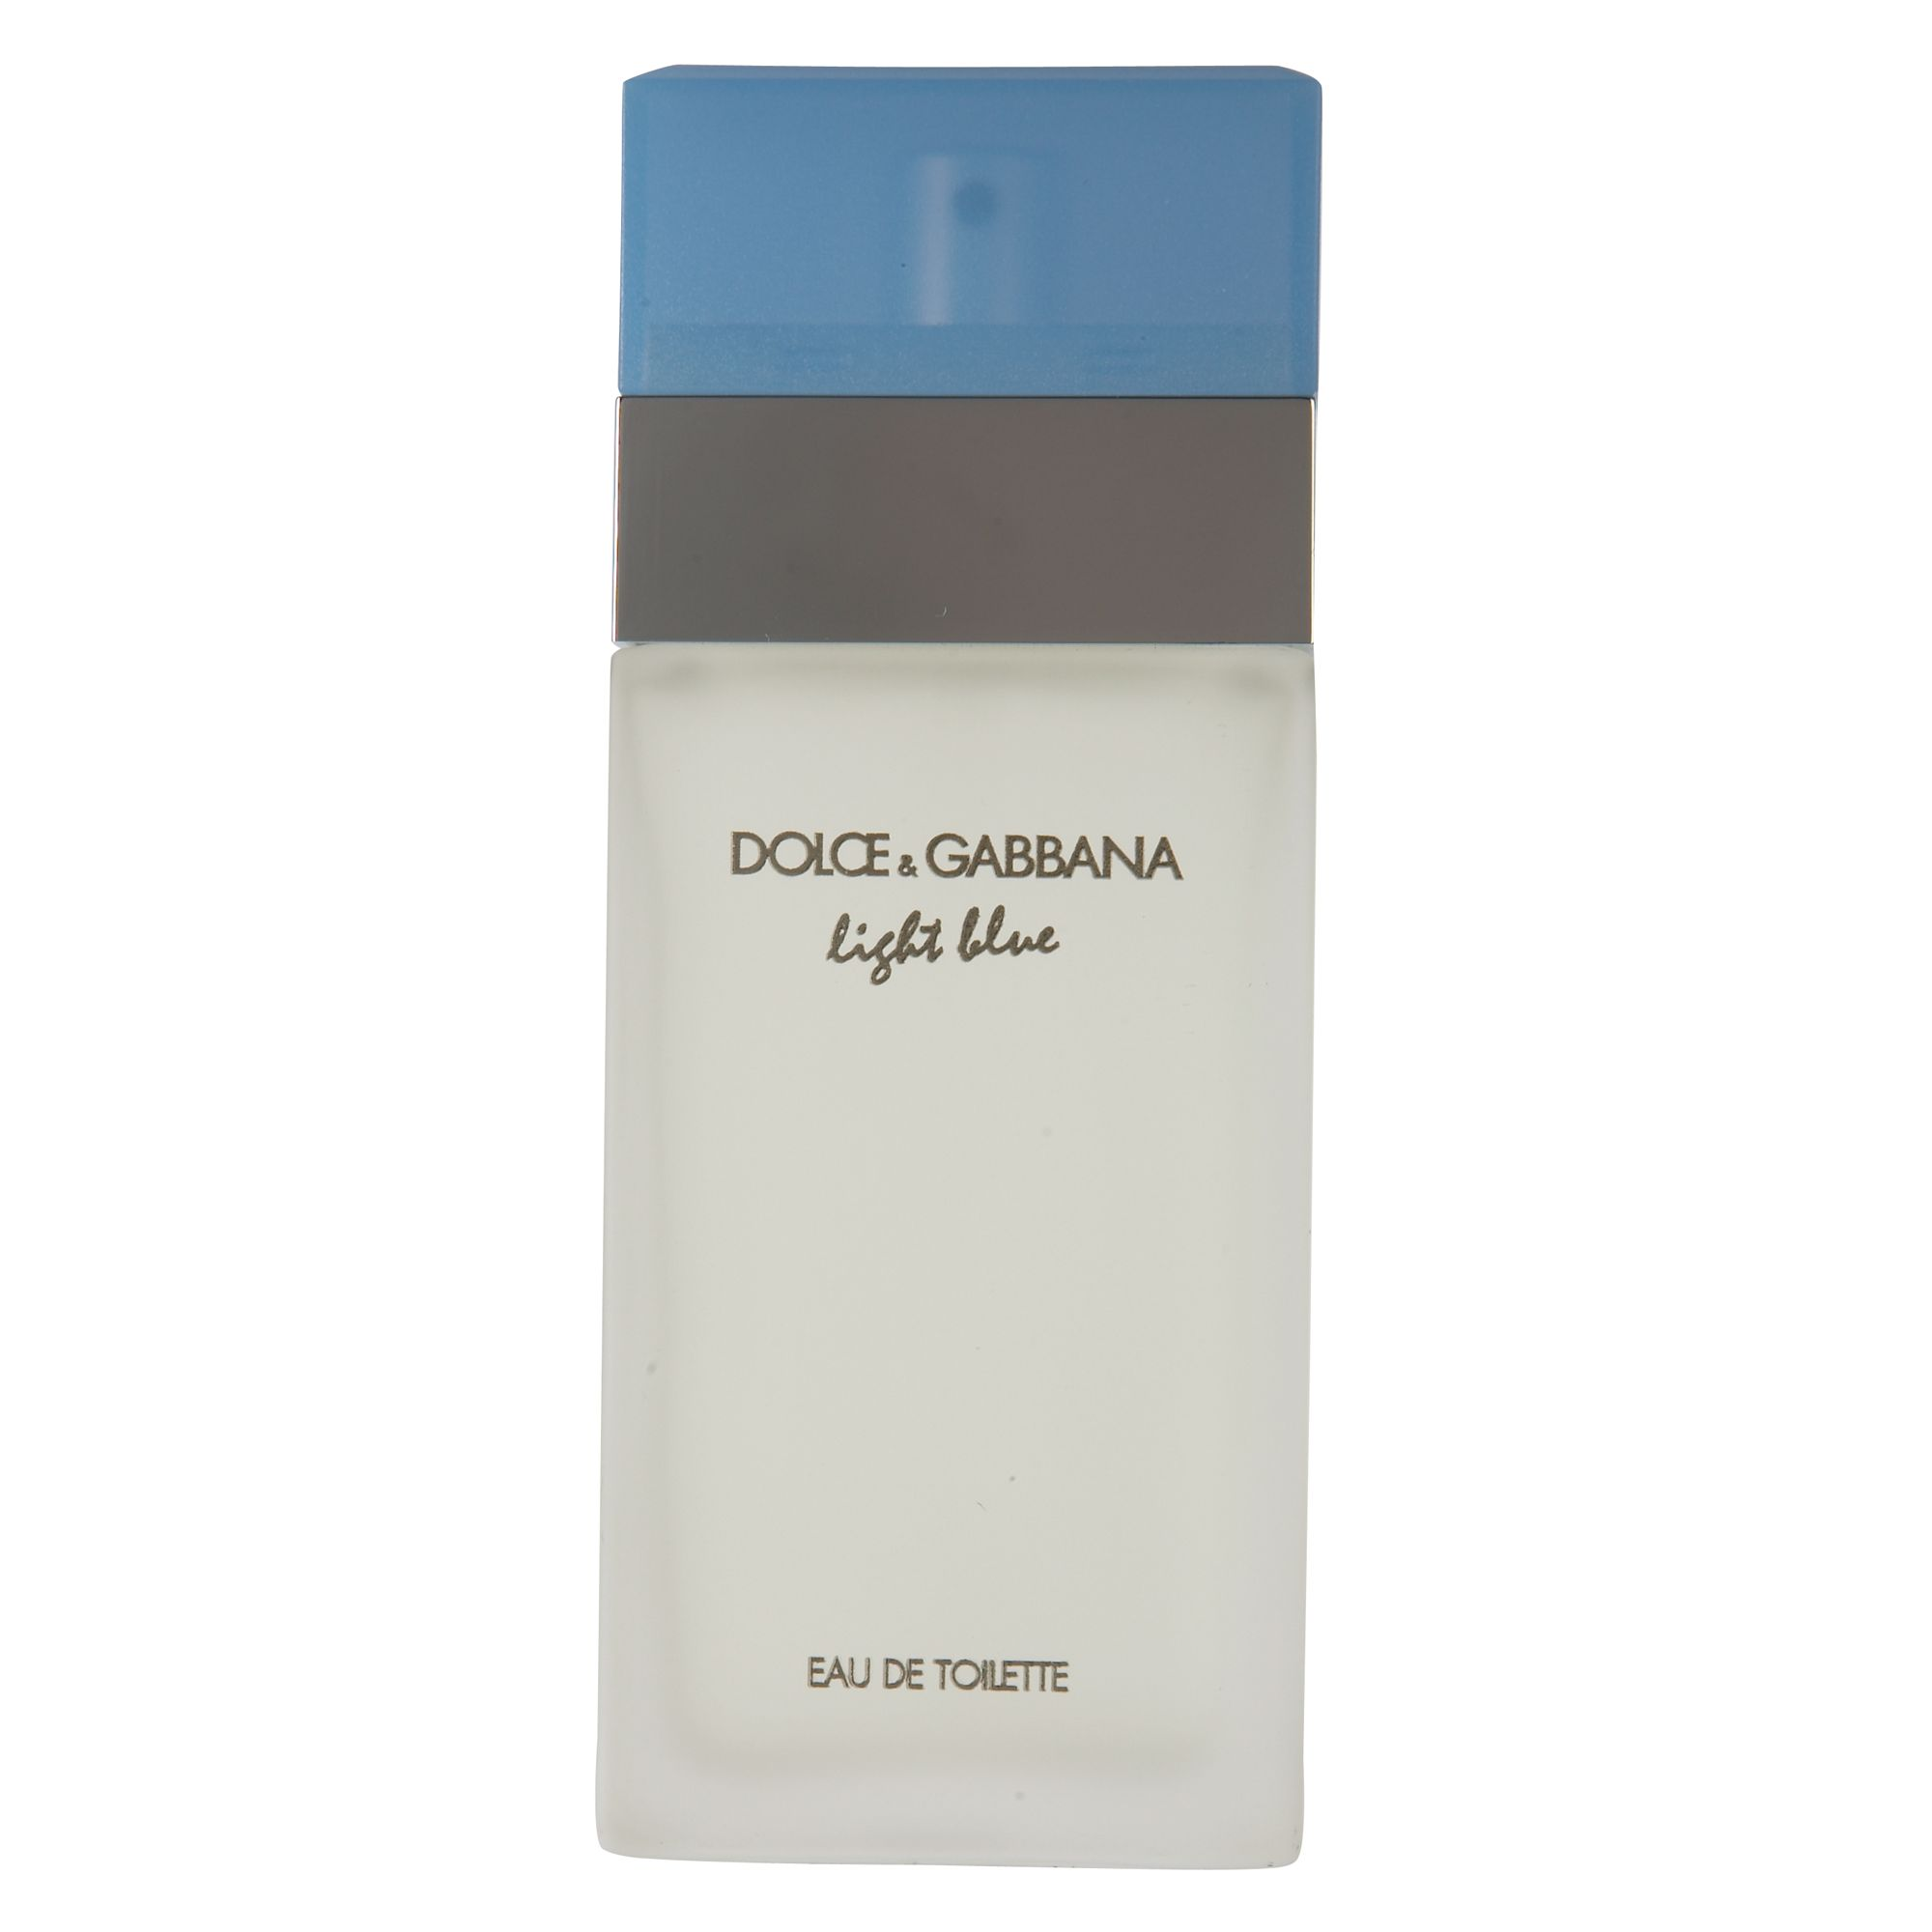 Light Blue eau de toilette 50ml